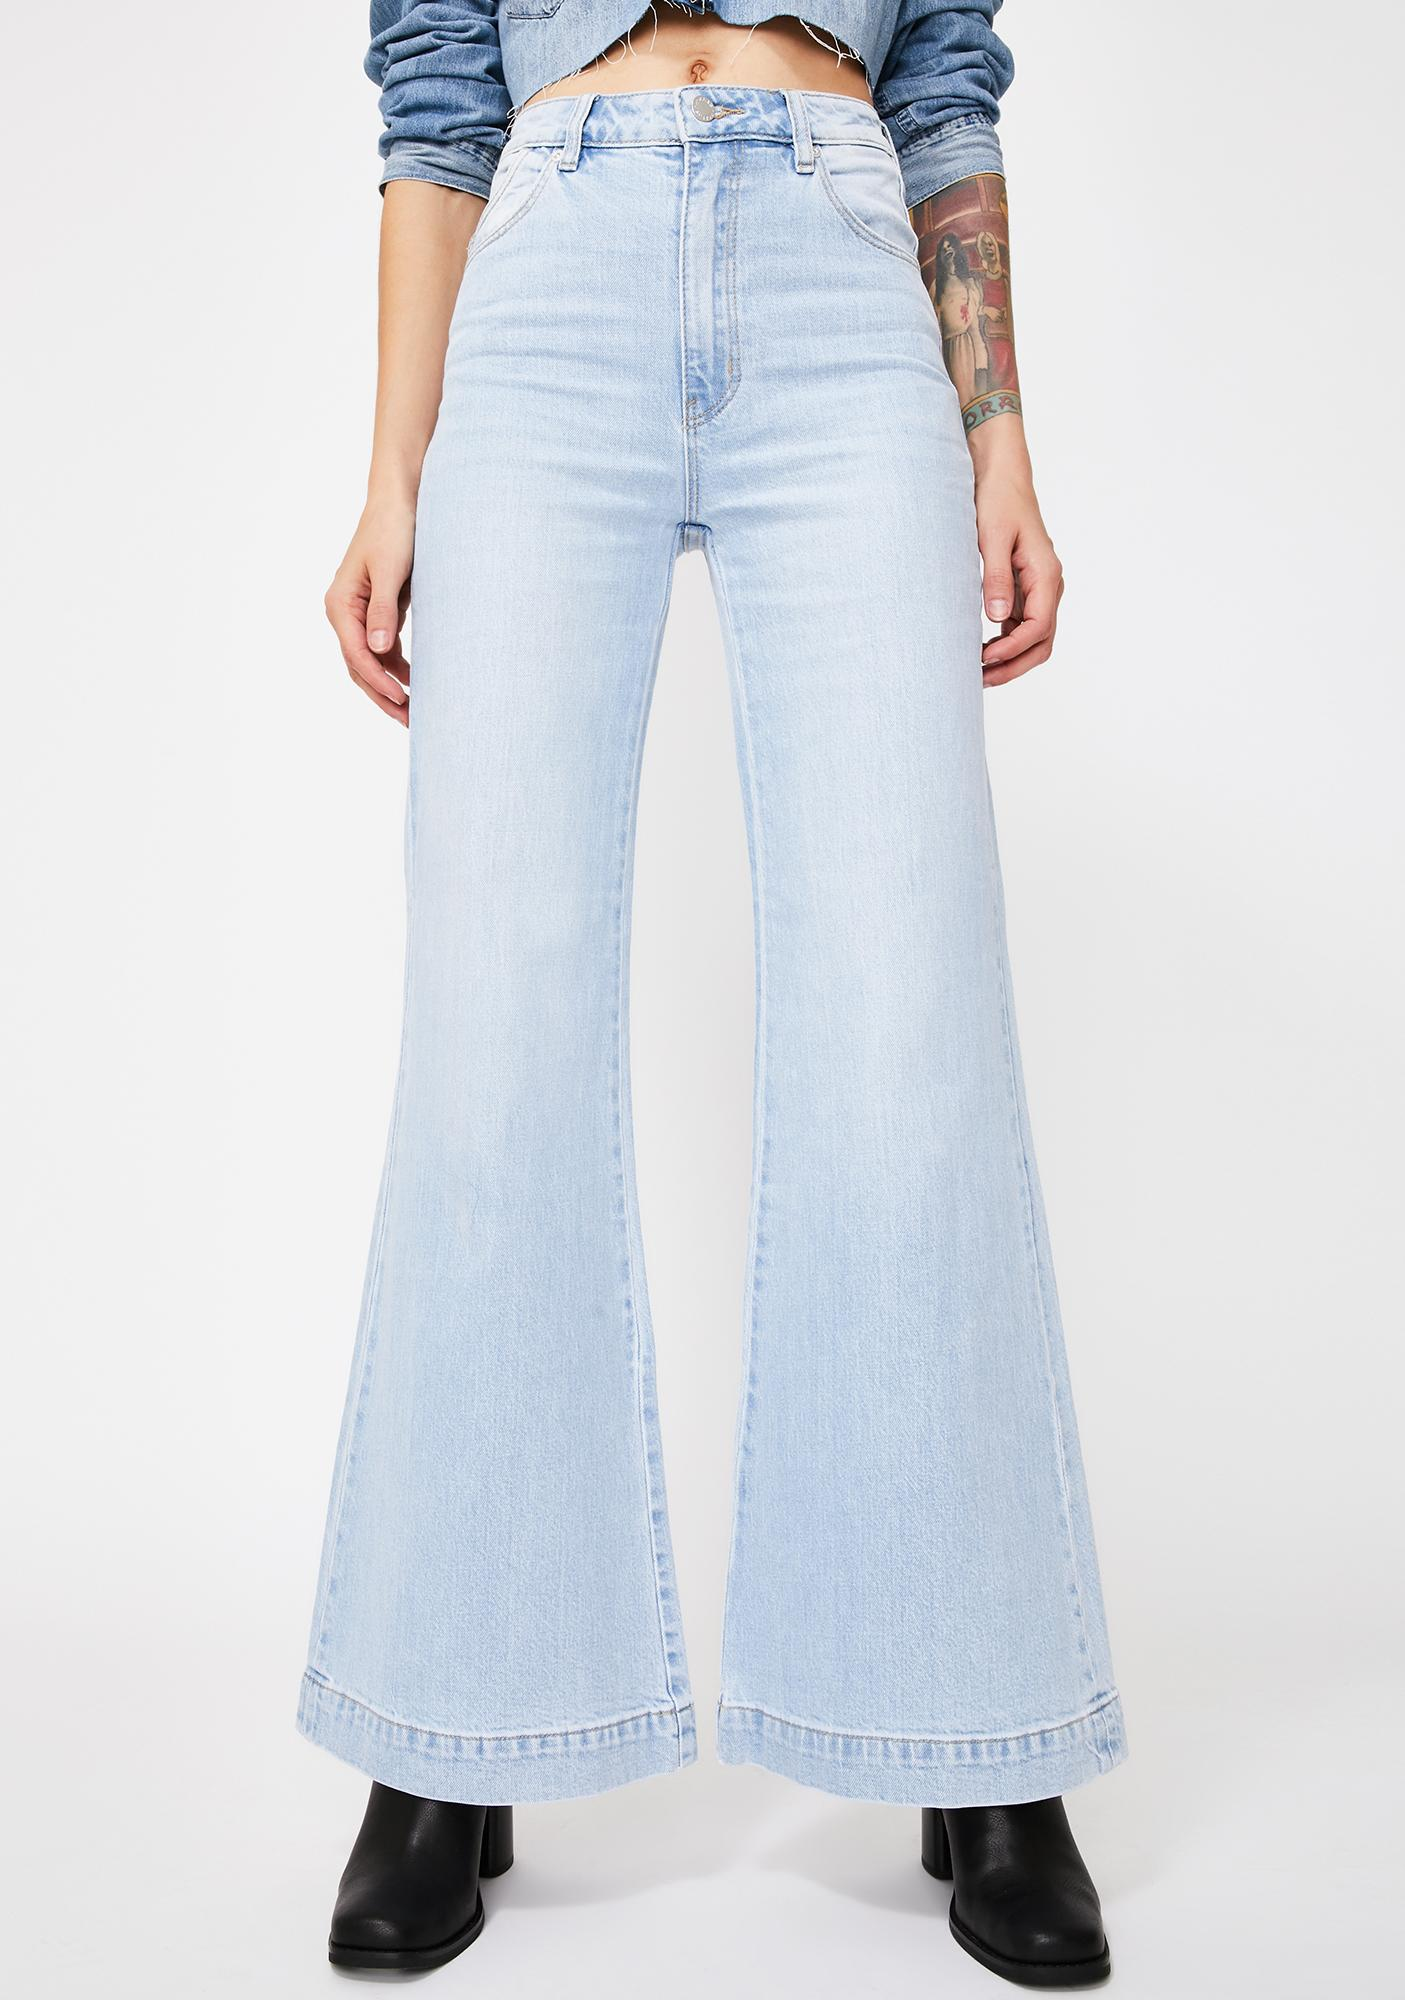 Rollas Tash Blue Eastcoast Flare Jeans